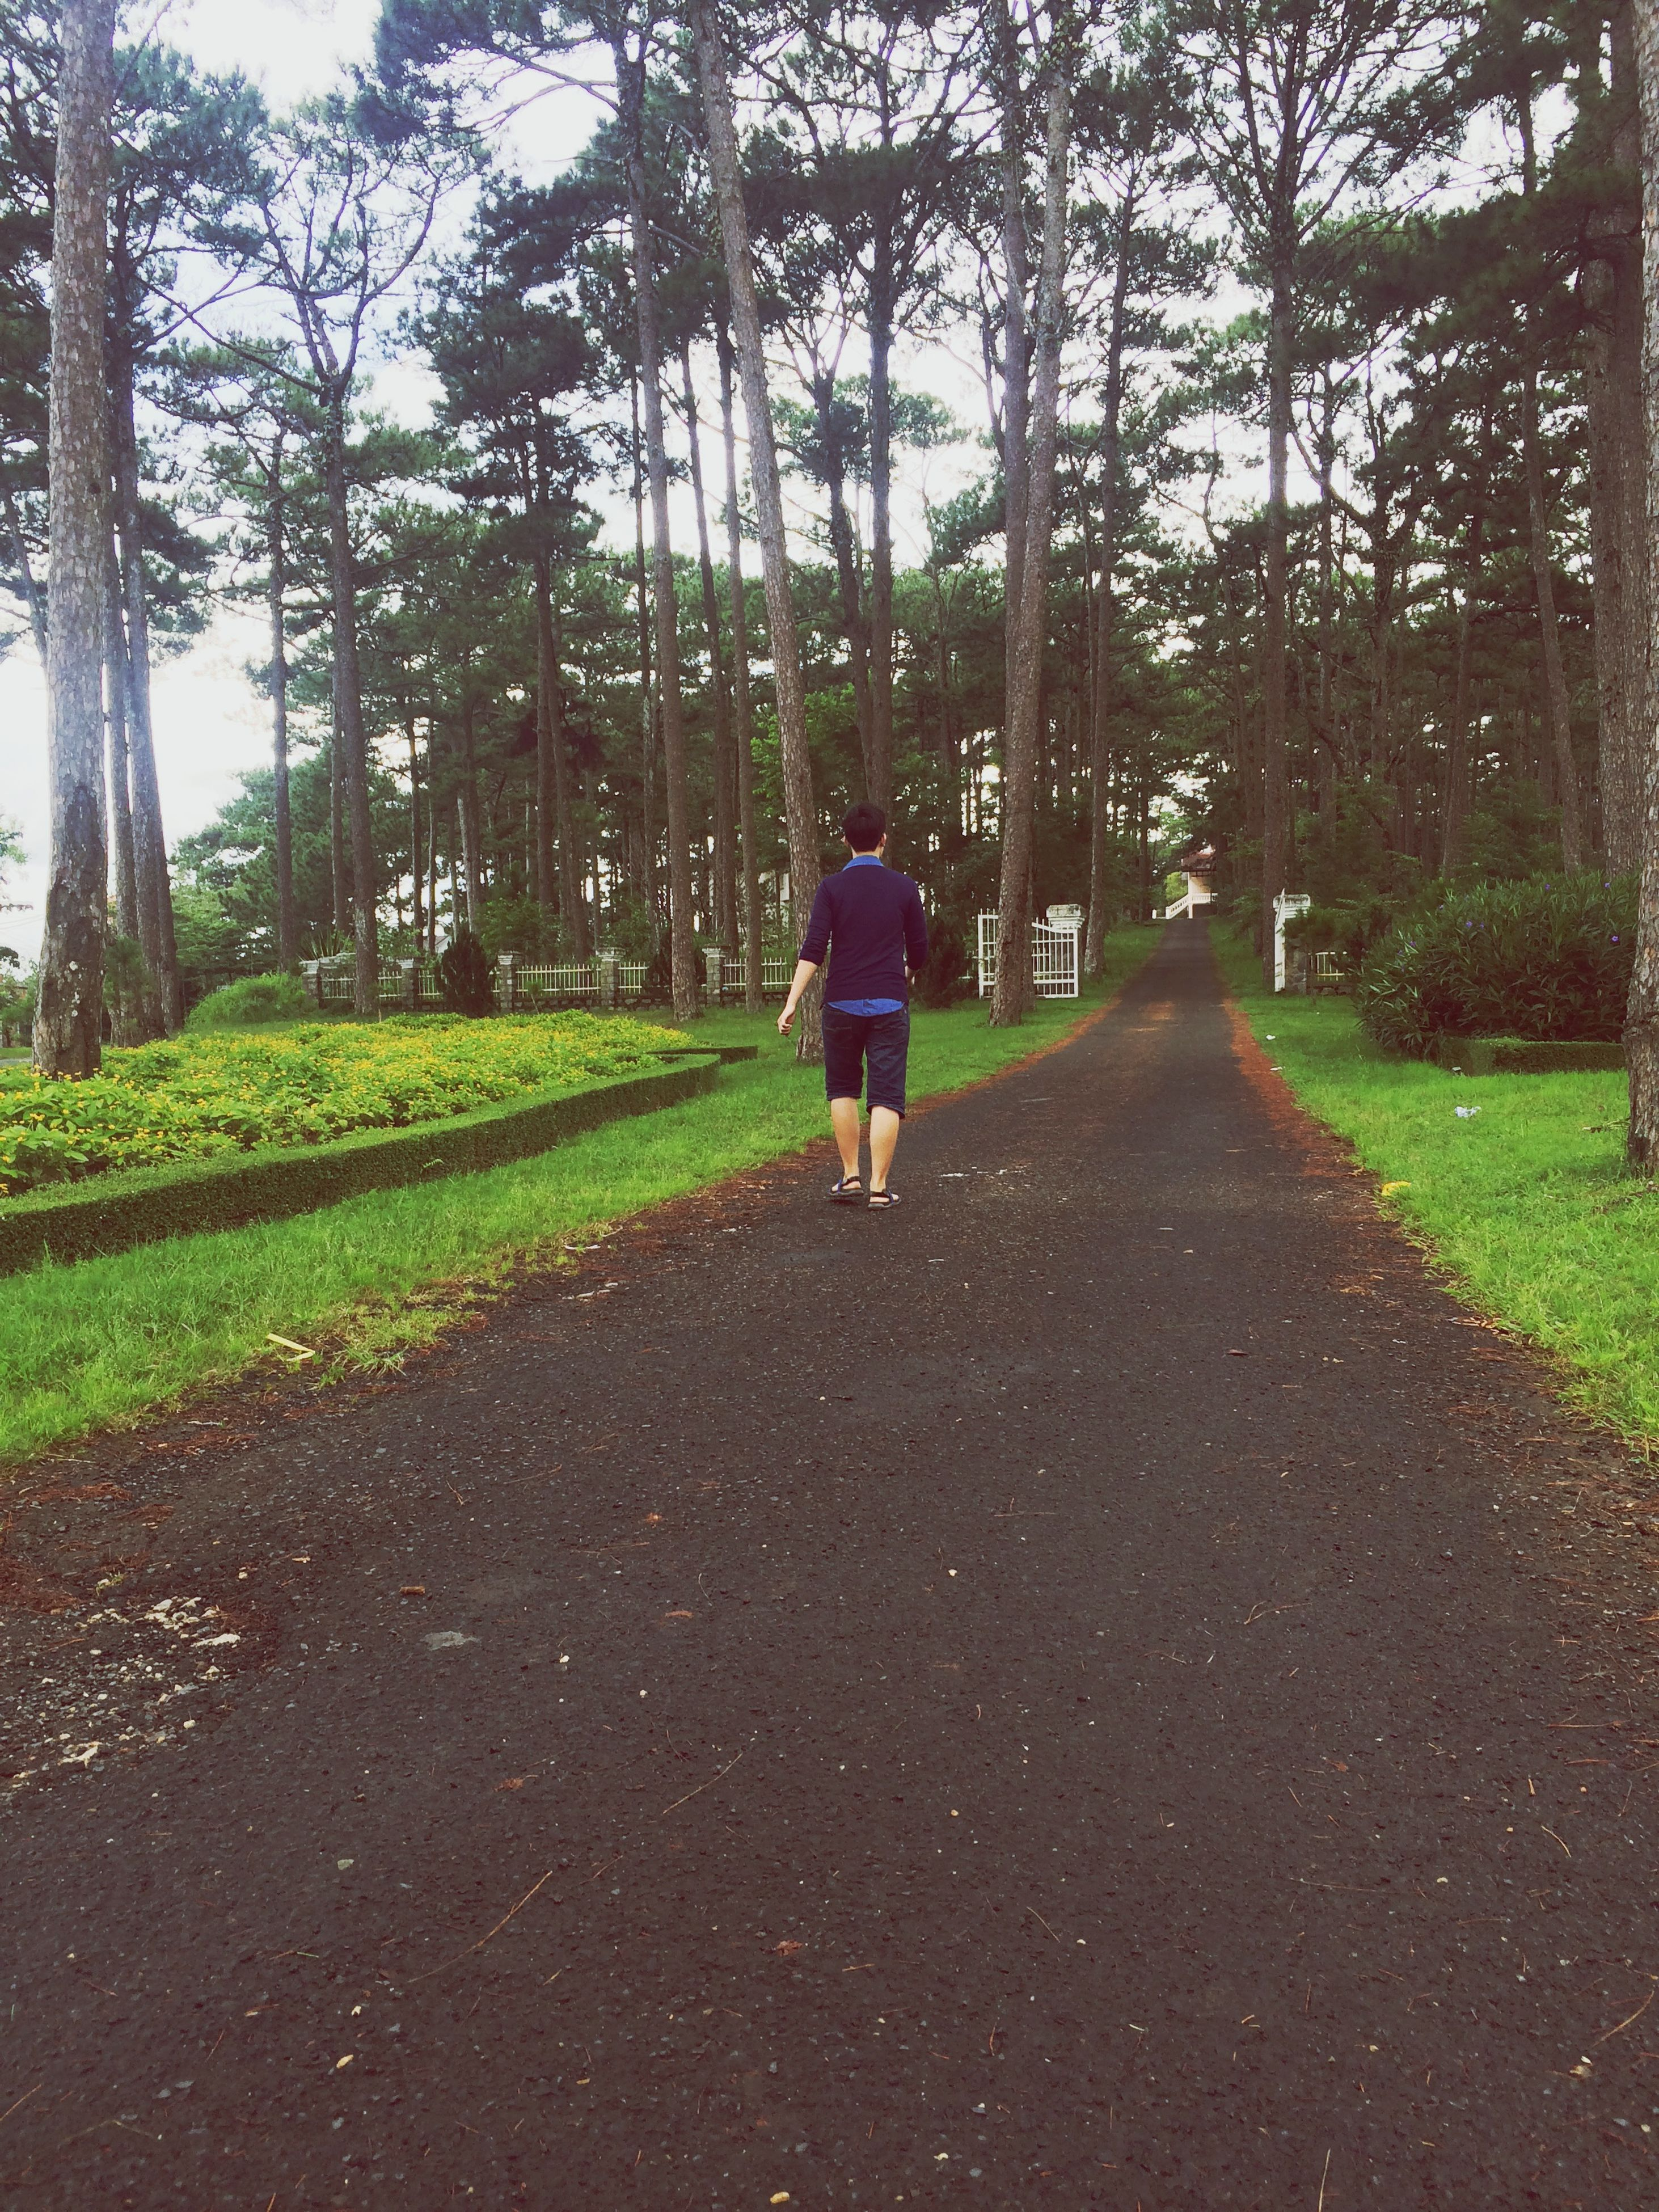 full length, tree, rear view, the way forward, walking, lifestyles, leisure activity, grass, casual clothing, diminishing perspective, road, men, footpath, growth, vanishing point, nature, dirt road, green color